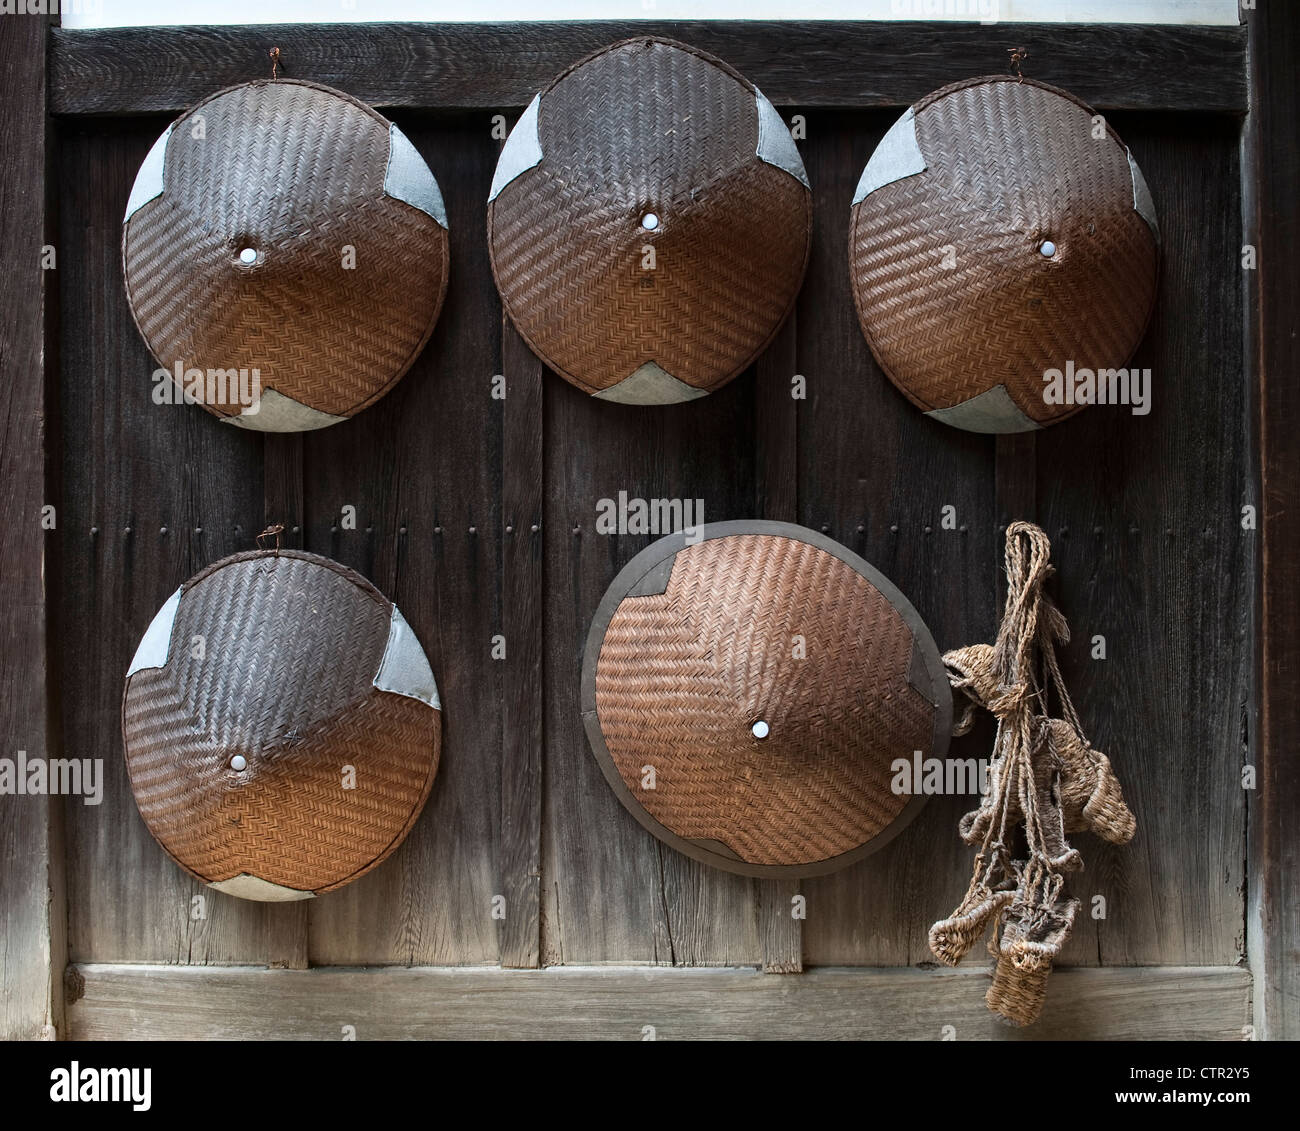 Taizo-in temple, Myoshinji, Kyoto, Japan. Hats and rope sandals worn by begging (mendicant) monks. - Stock Image